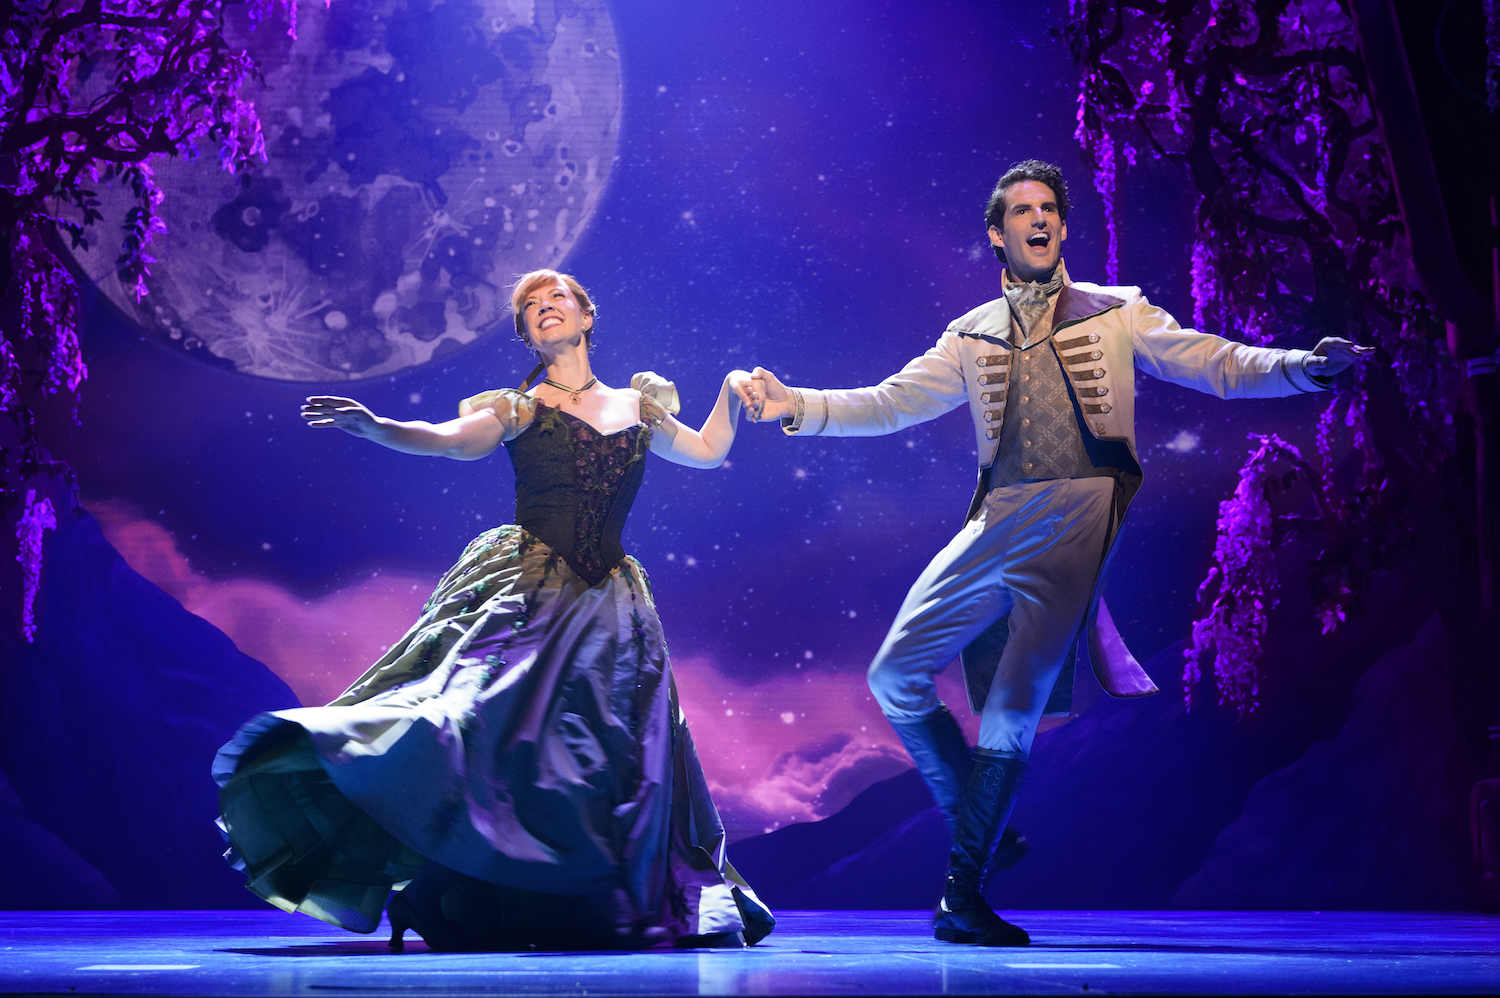 Here's everything you should know about getting tickets to Frozen on Broadway